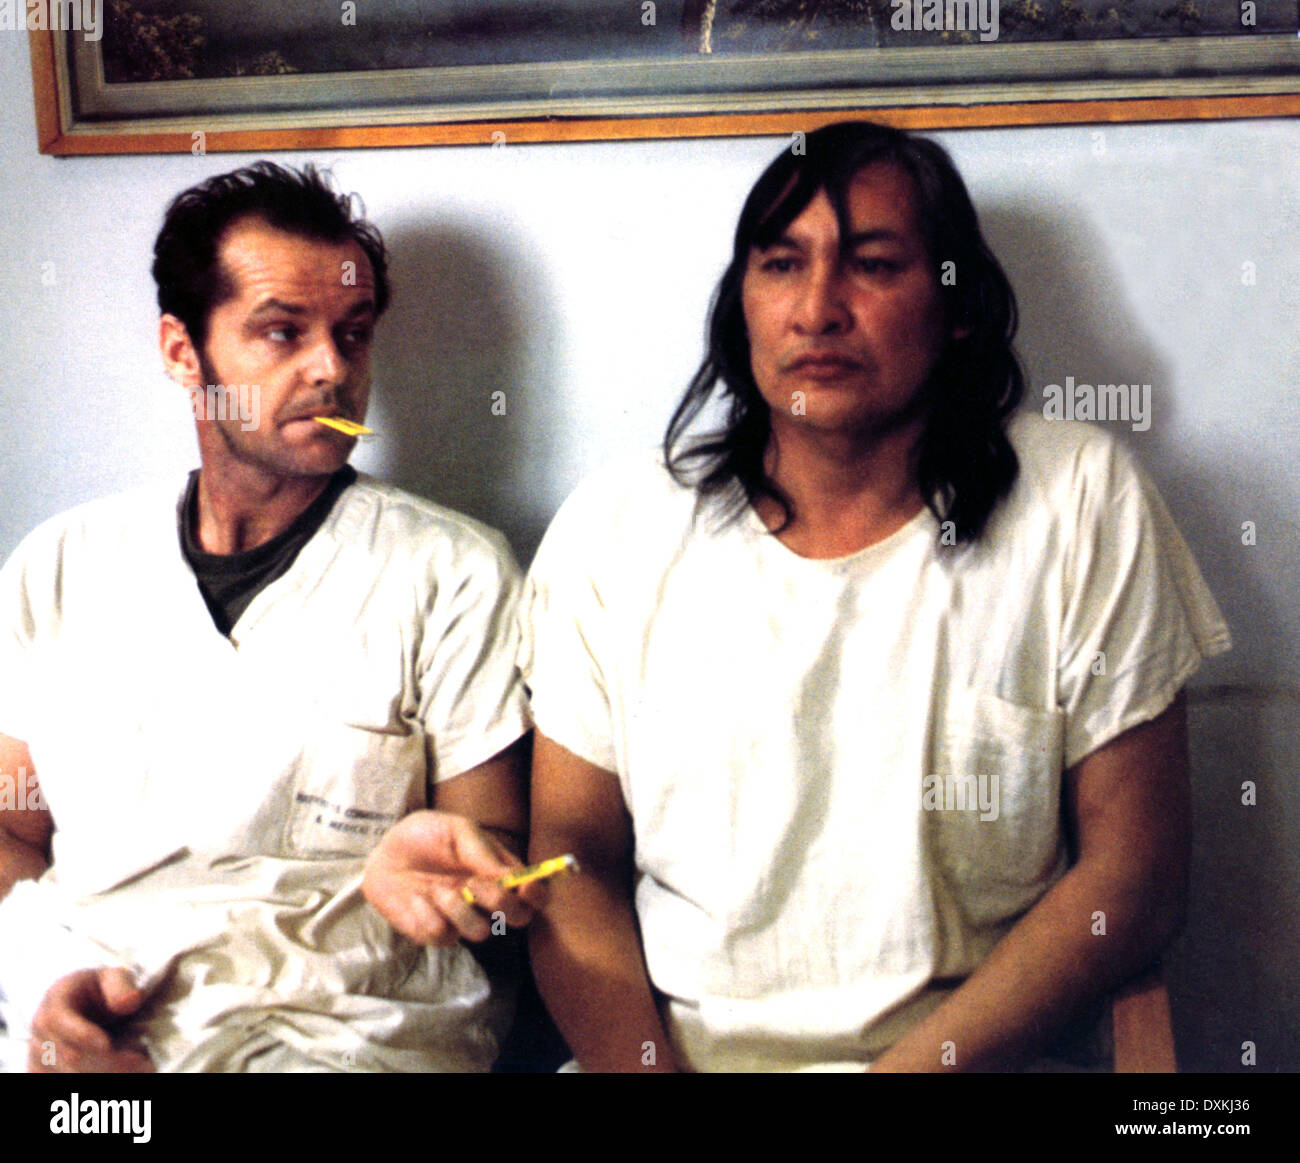 what does the fog machine in chiefs head represent in one flew over the cuckoos nest Start studying one flew over the cuckoo's nest learn vocabulary, terms, and more with flashcards, games, and other study tools.